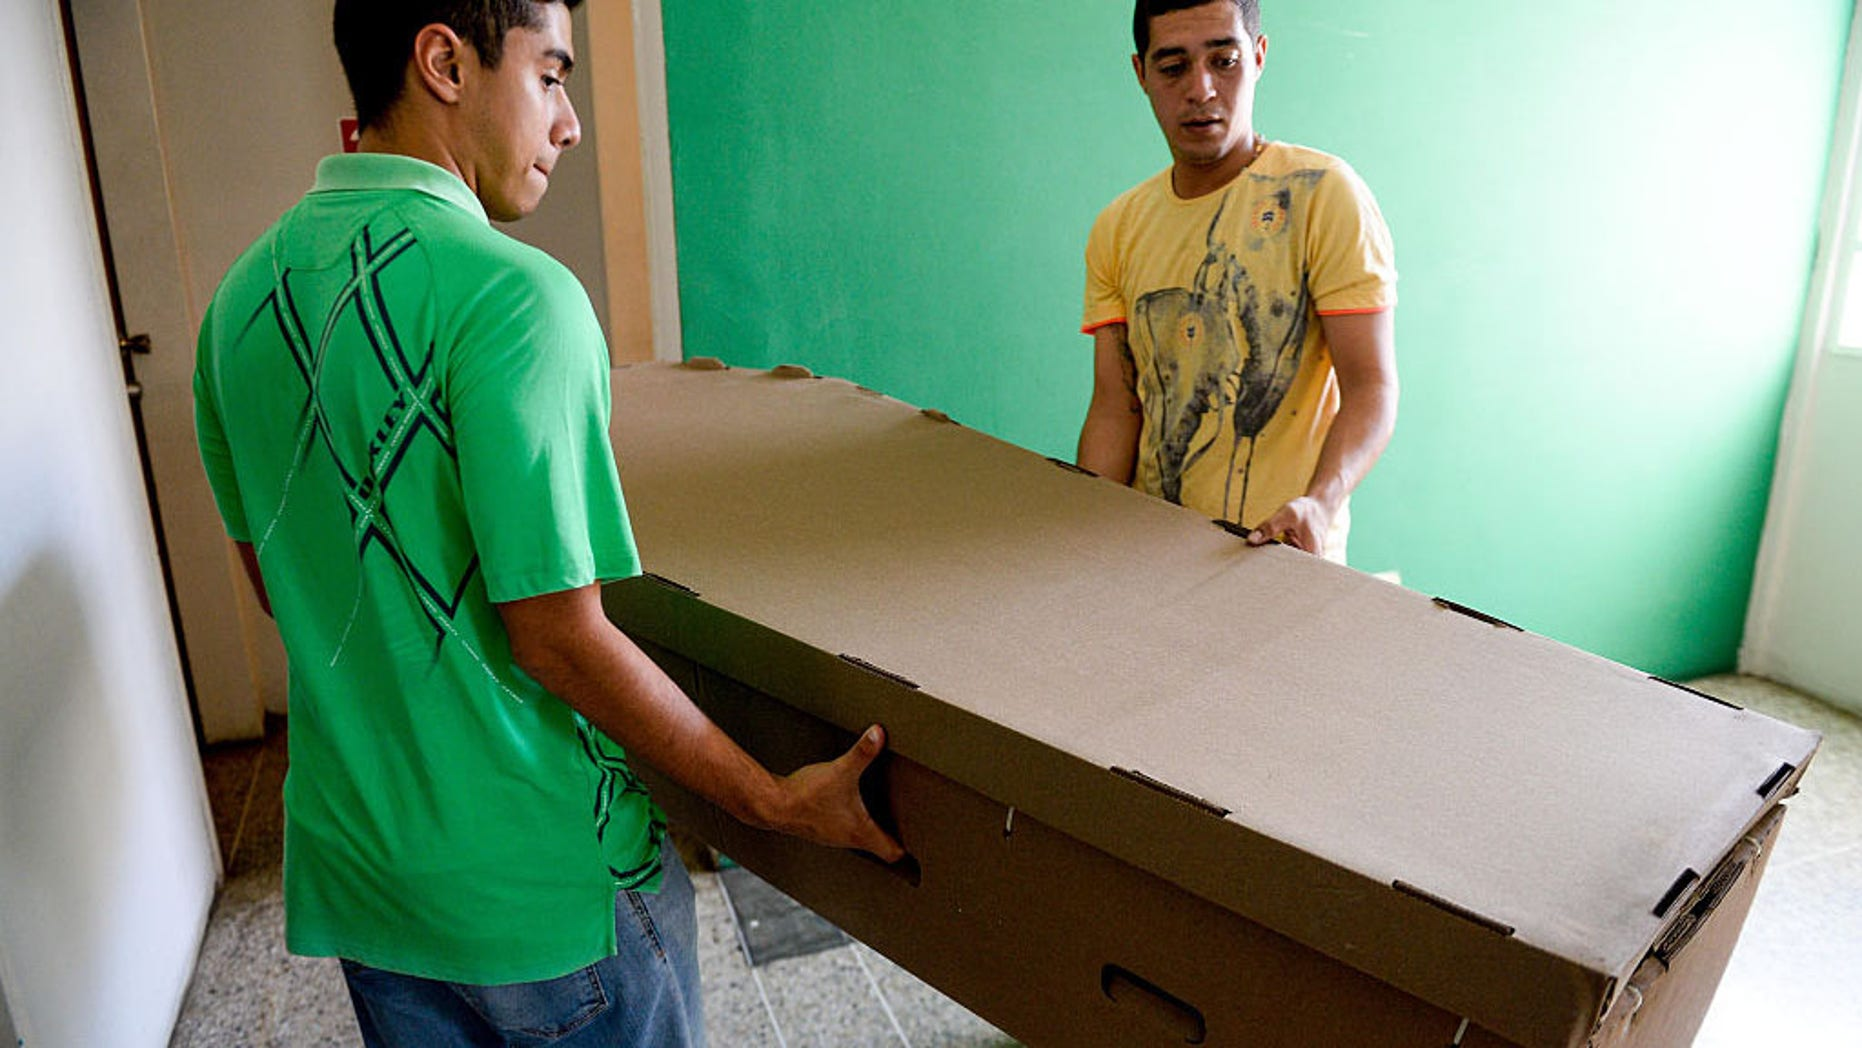 Two young men carry a cardboard coffin in Barquisimeto, Venezuela on August 9, 2016.Due to the high cost and the shortage of materials that make the acquisition of coffins difficult in Venezuela, they are being made in cheap timber planks and even cardboard. (Photo credit FEDERICO PARRA/AFP/Getty Images)